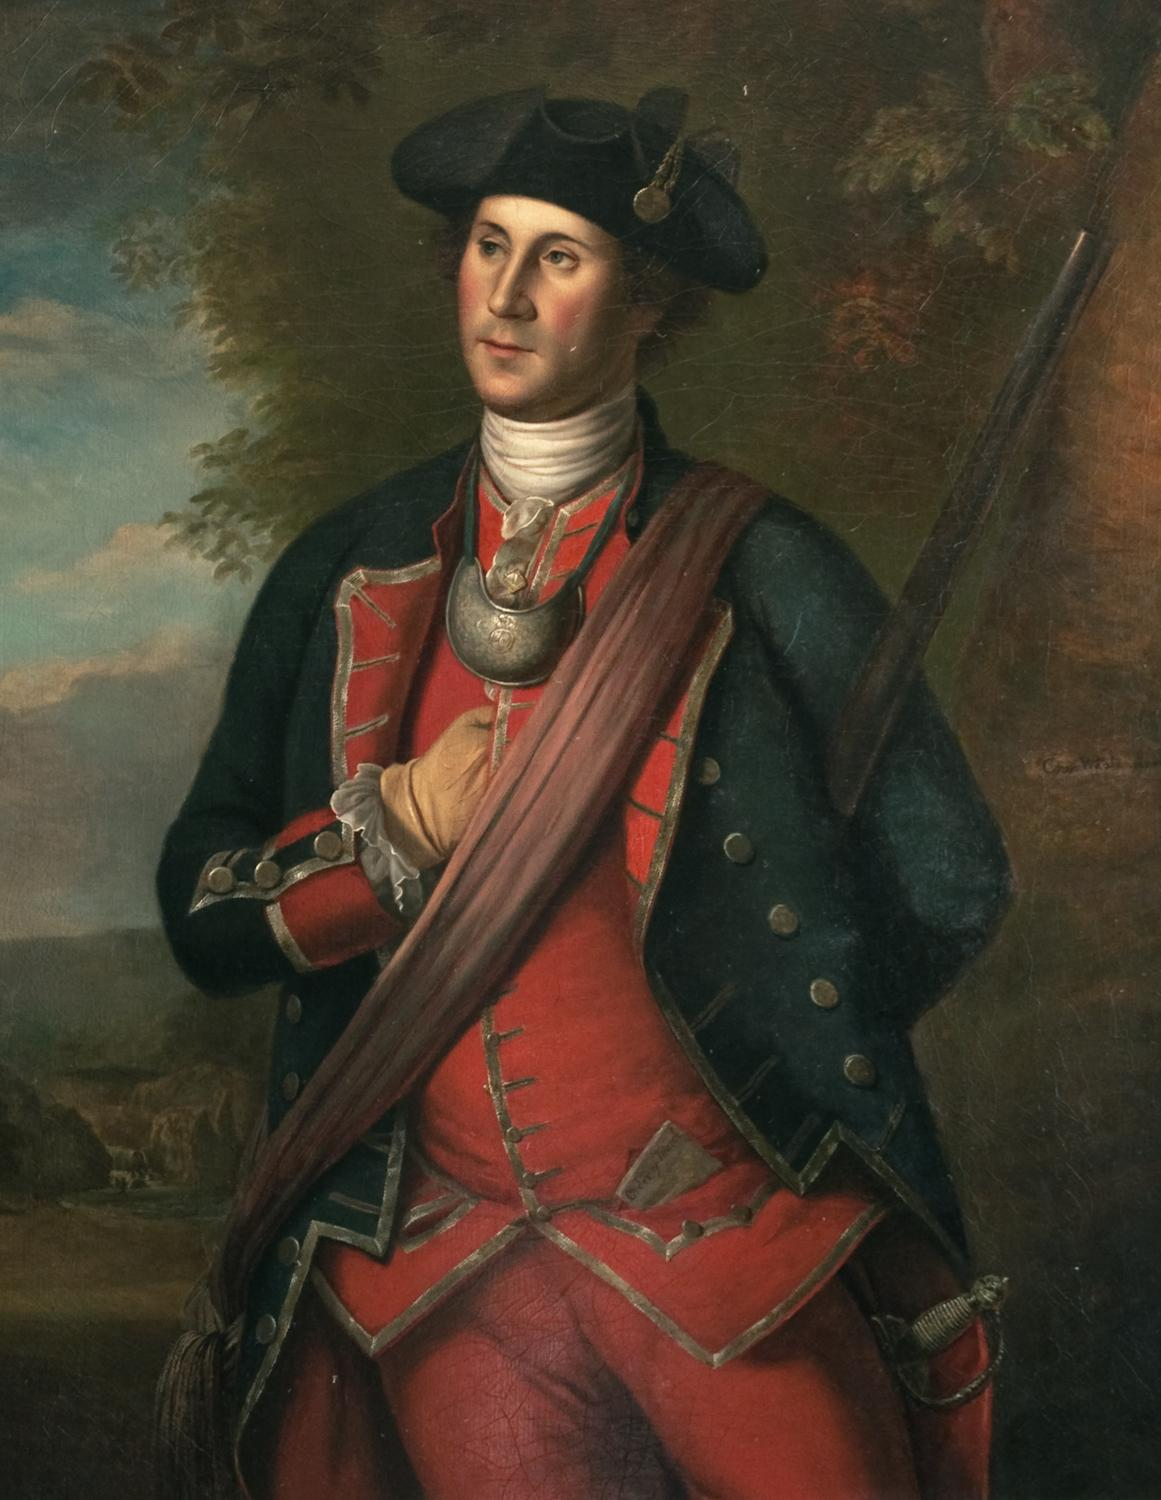 George Washington as First Colonel in the Virginia Regiment, Charles Willson Peale, oil on canvas, 1772 [U1897.1.1]. Gift of George Washington Custis Lee, University Collections of Art and History, Washington & Lee University, Lexington, Virginia.